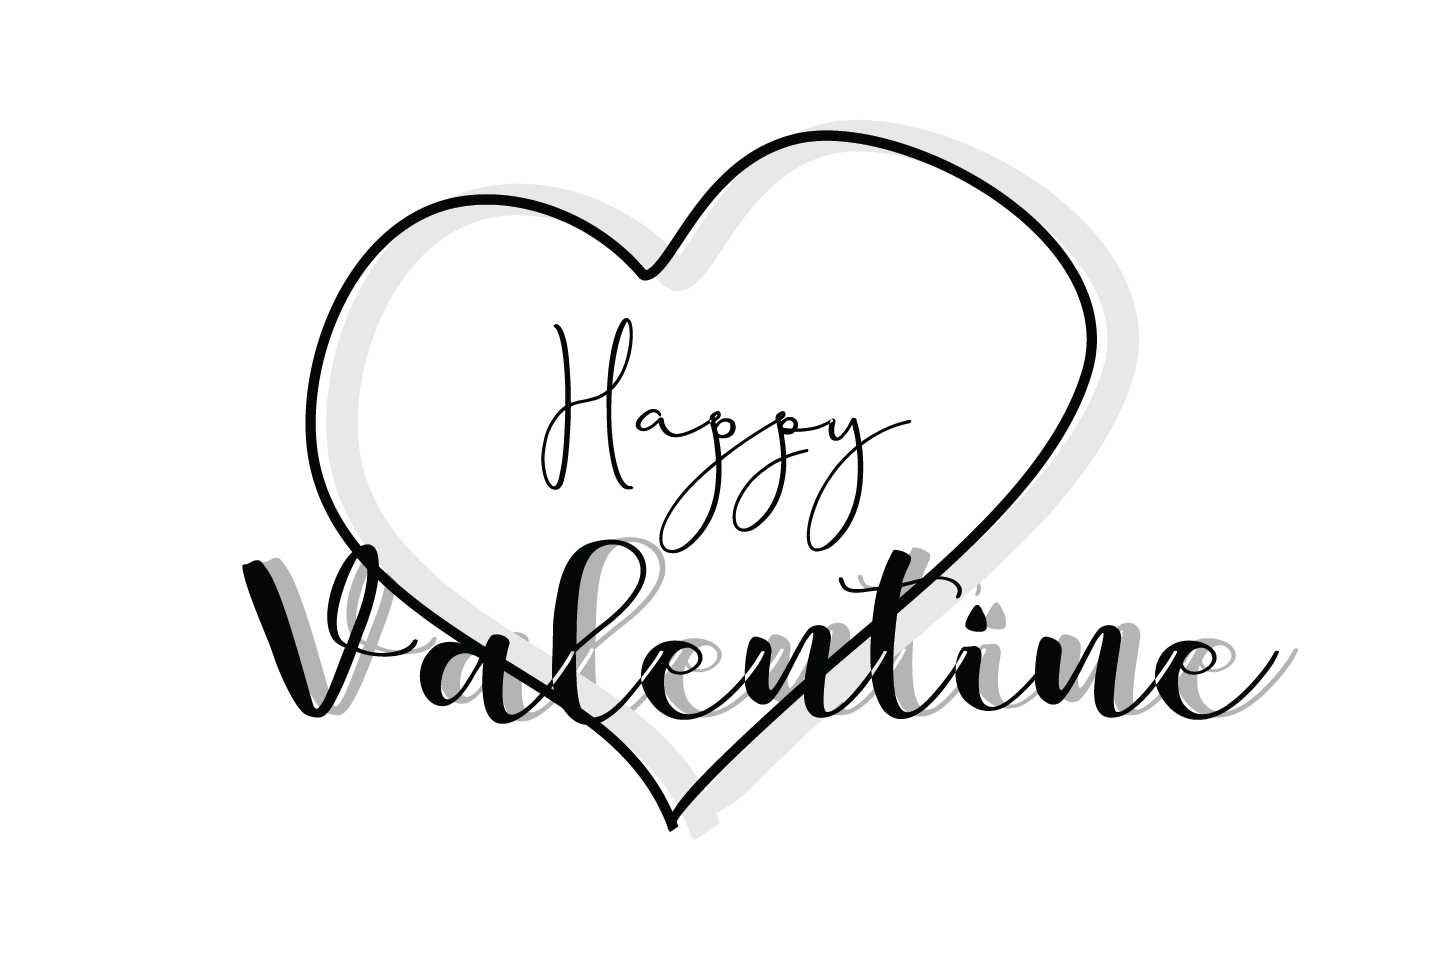 Download Free Happy Valentine Quote Svg Cut Graphic By Yuhana Purwanti for Cricut Explore, Silhouette and other cutting machines.